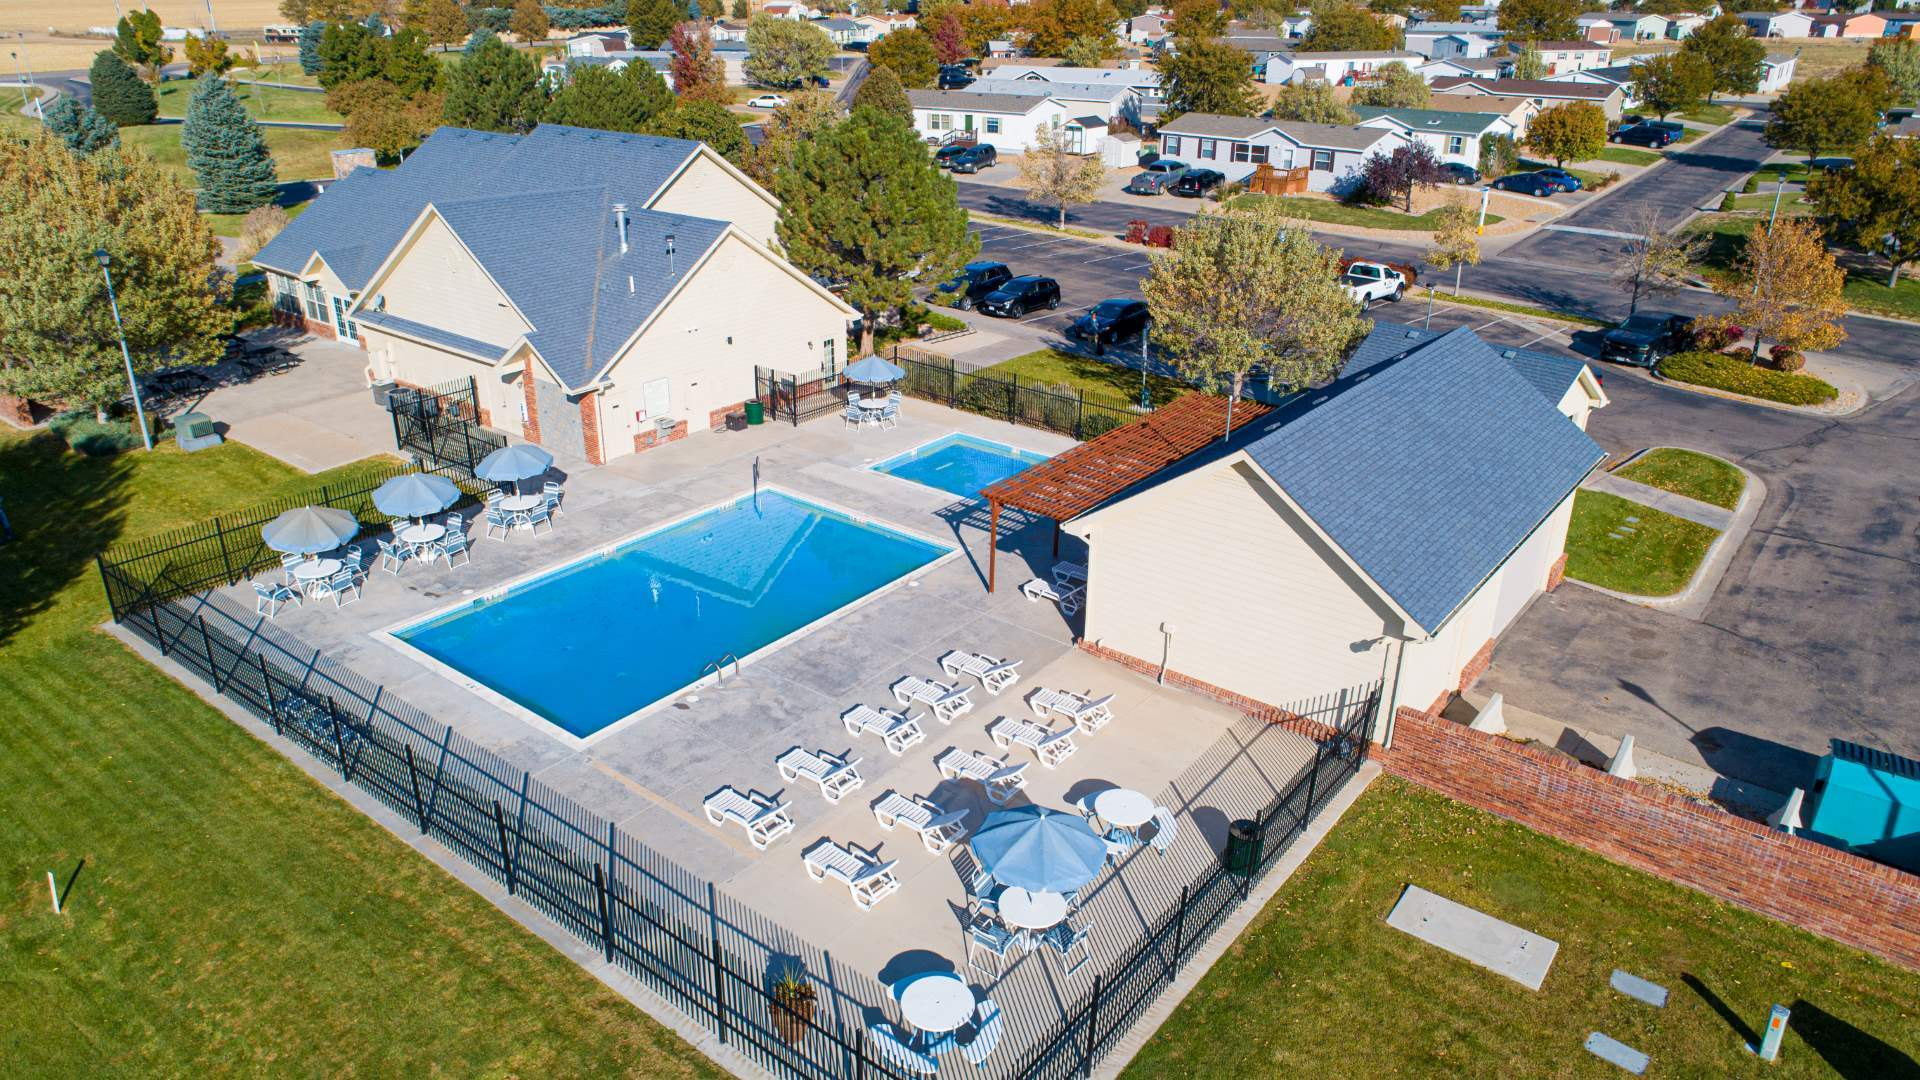 Cave Creek Manufactured Homes Community Aerial Swimming Pool in Evans, CO